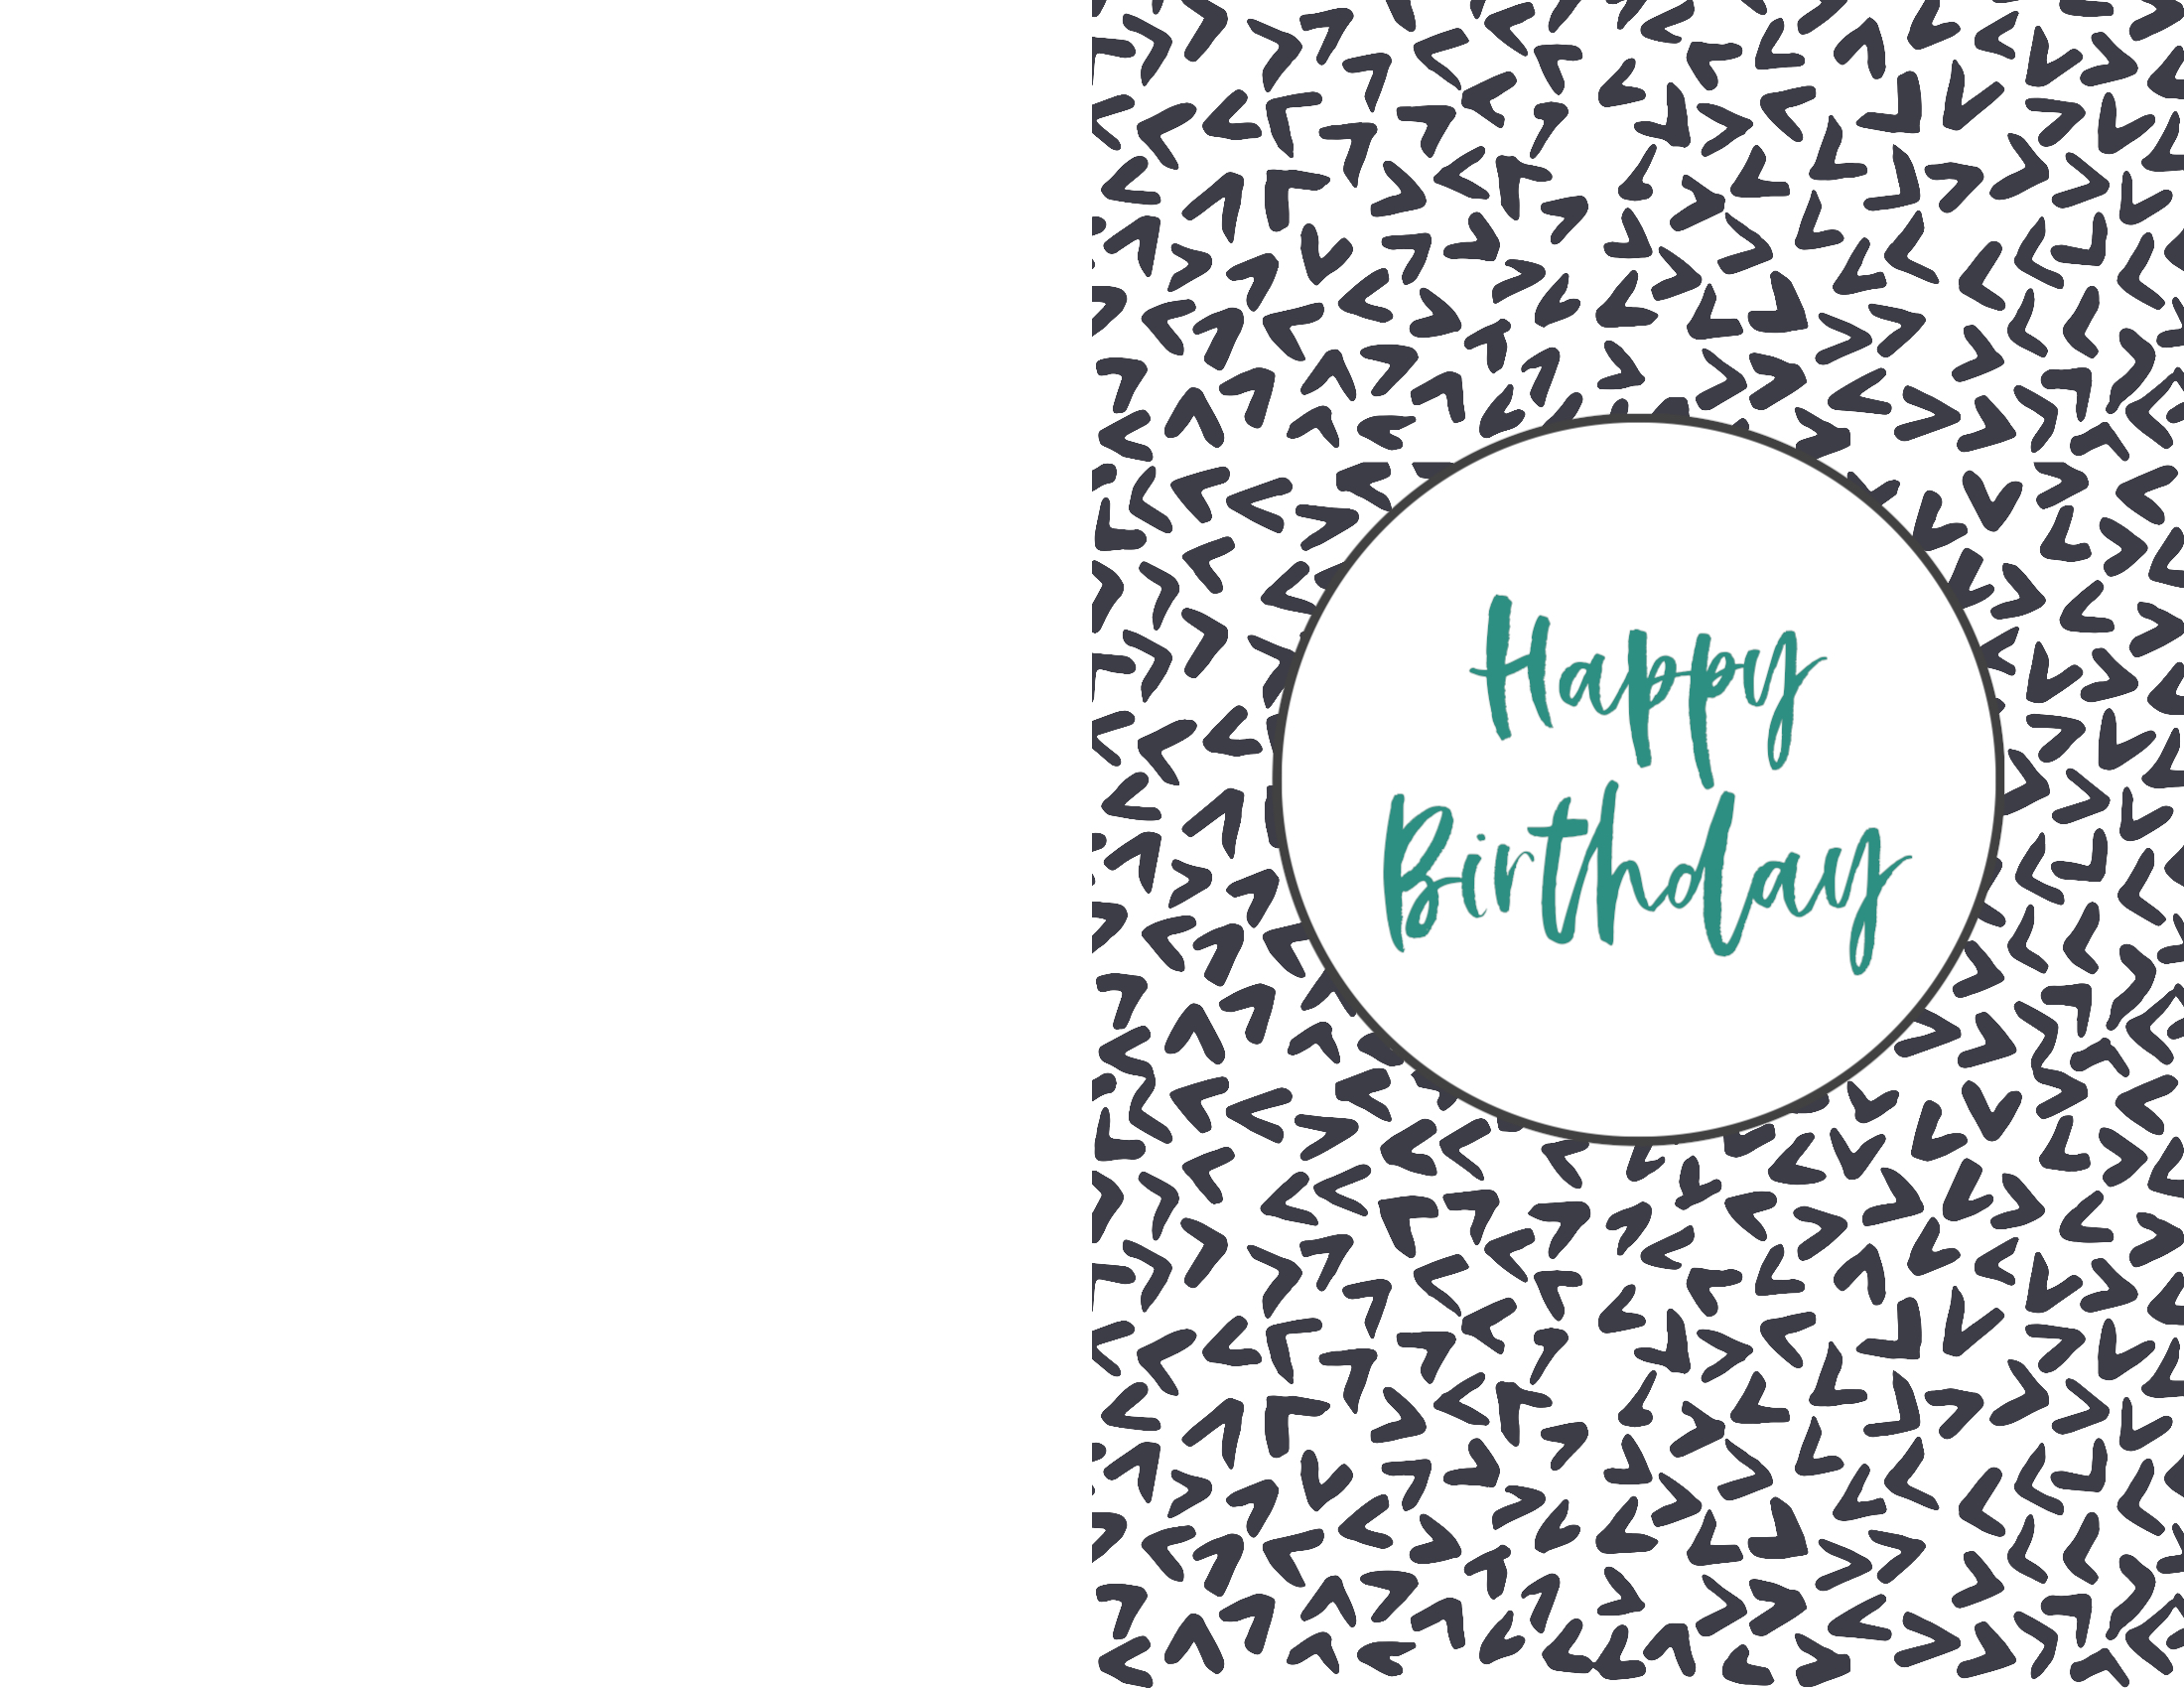 Magnificent Free Printable Birthday Cards Paper Trail Design Funny Birthday Cards Online Overcheapnameinfo